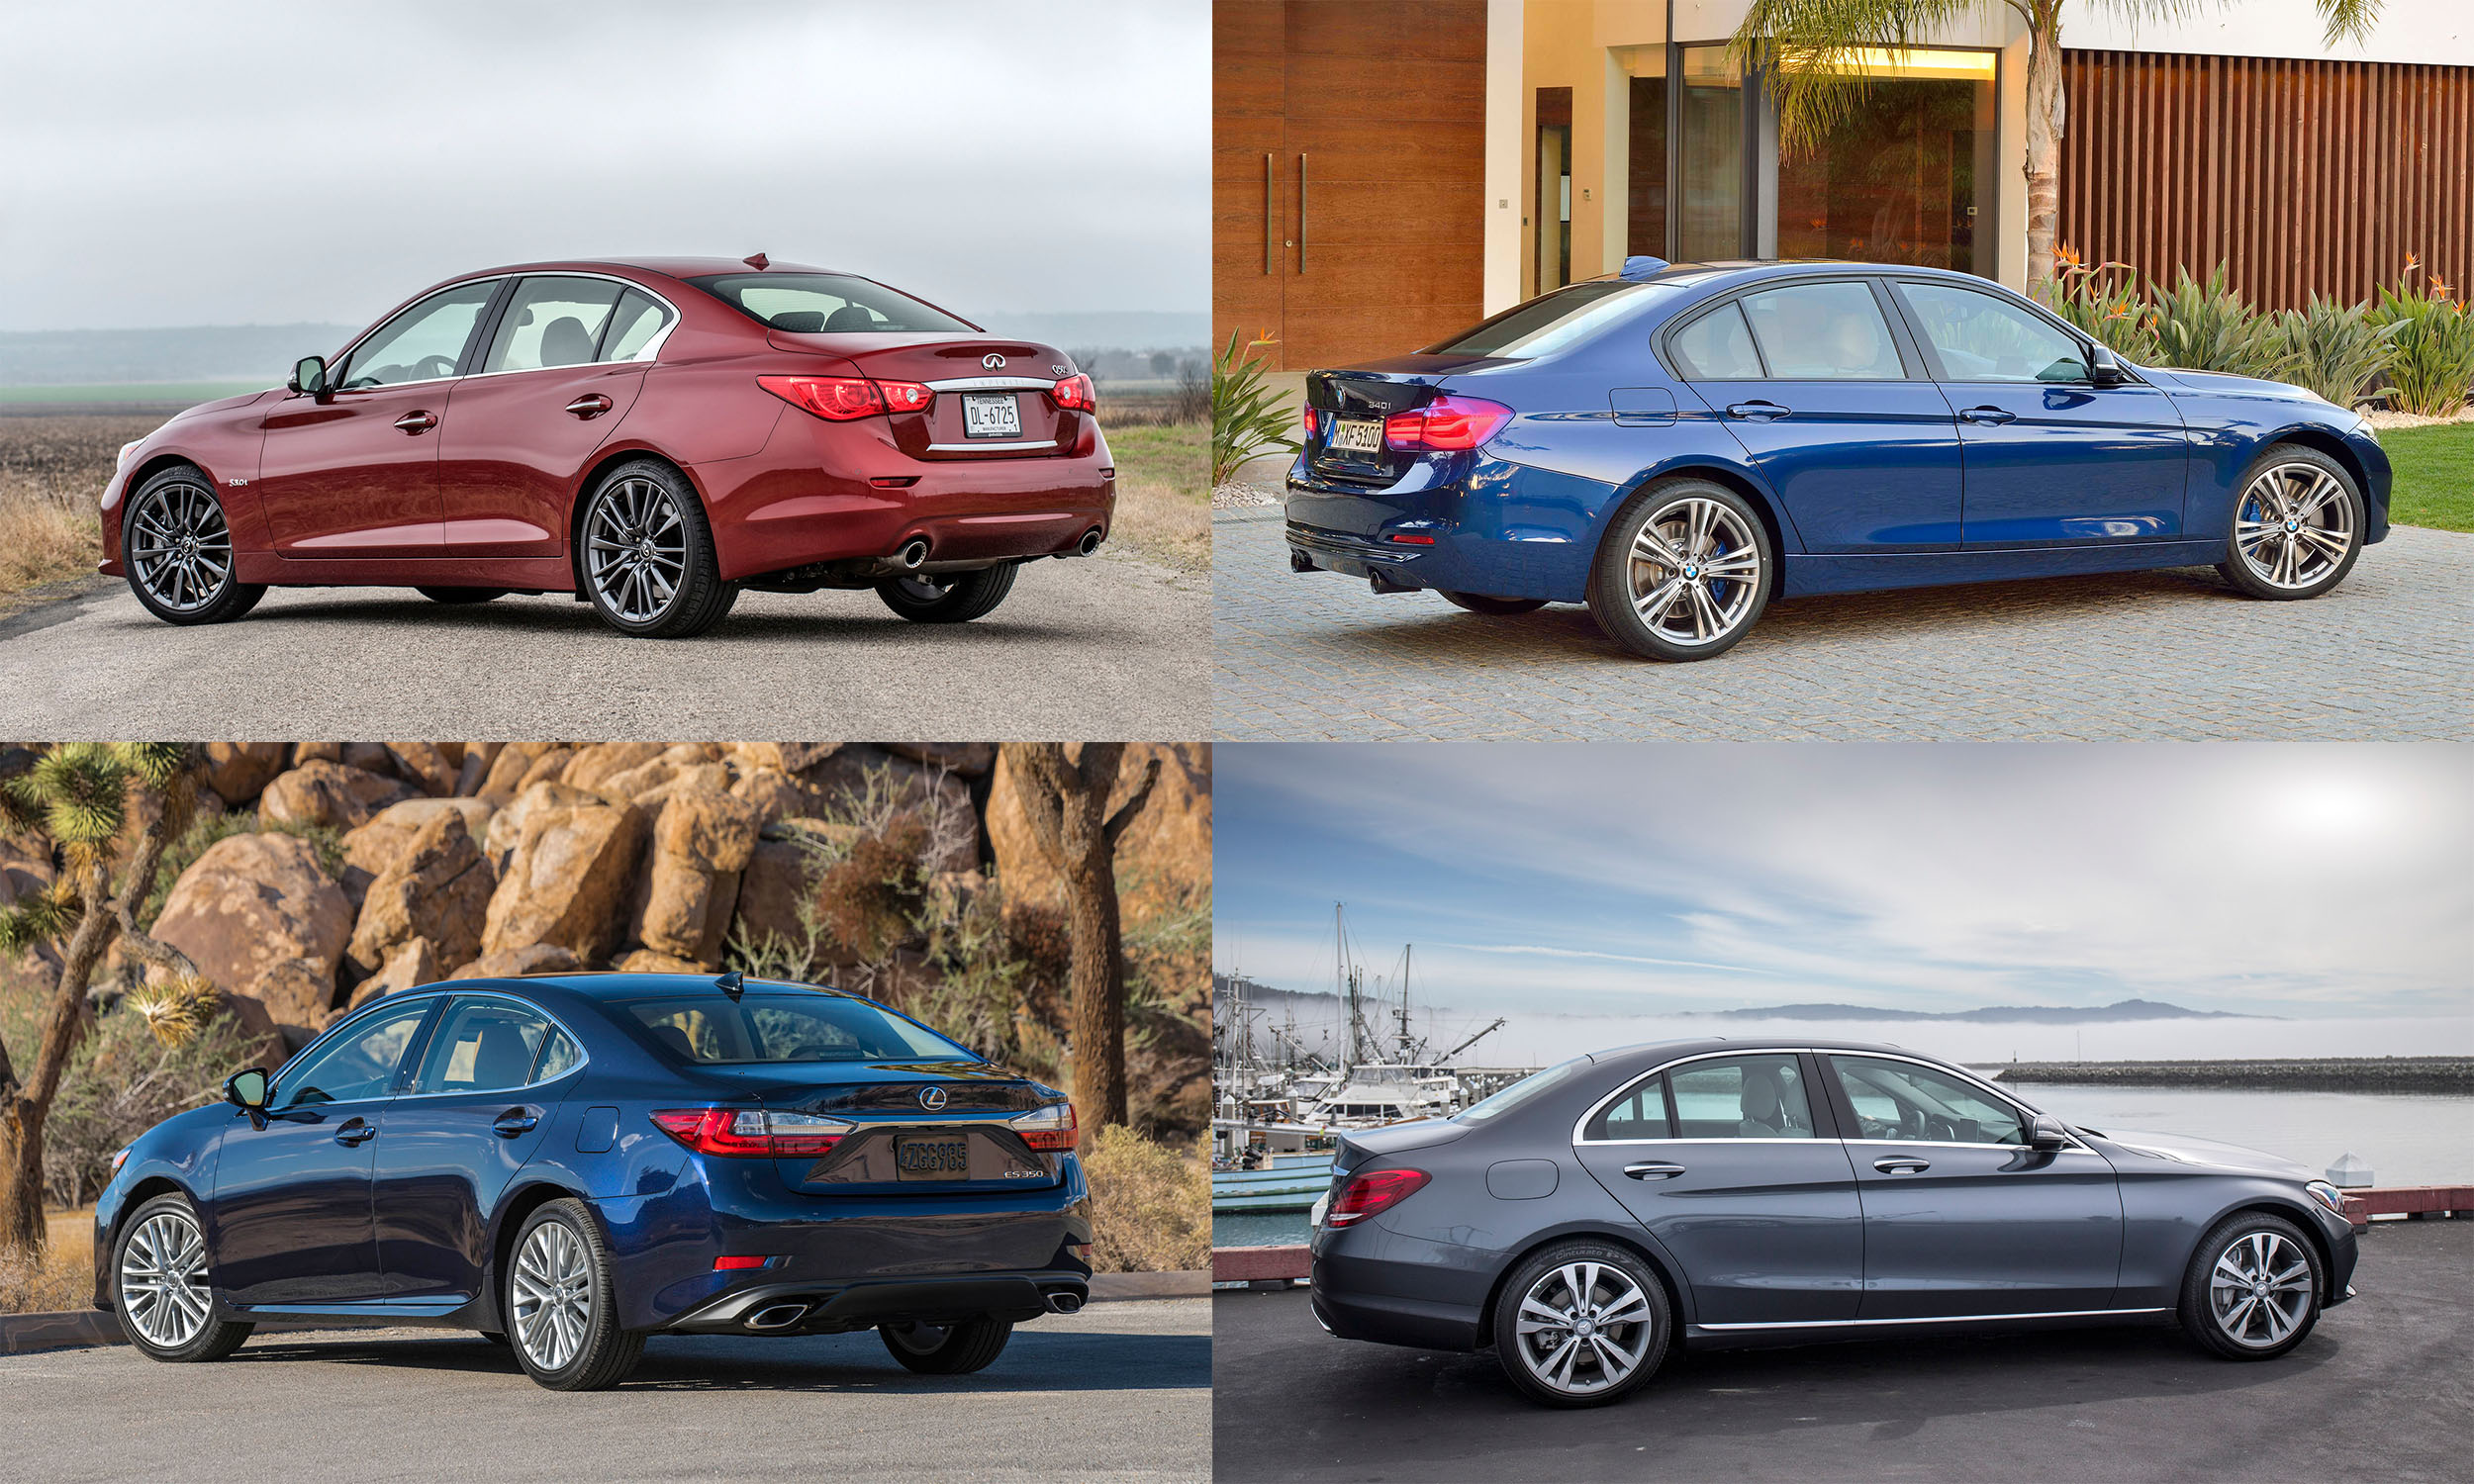 © Infiniti North America, Inc., BMW of North America, Mercedes-Benz USA, Toyota Motor Sales